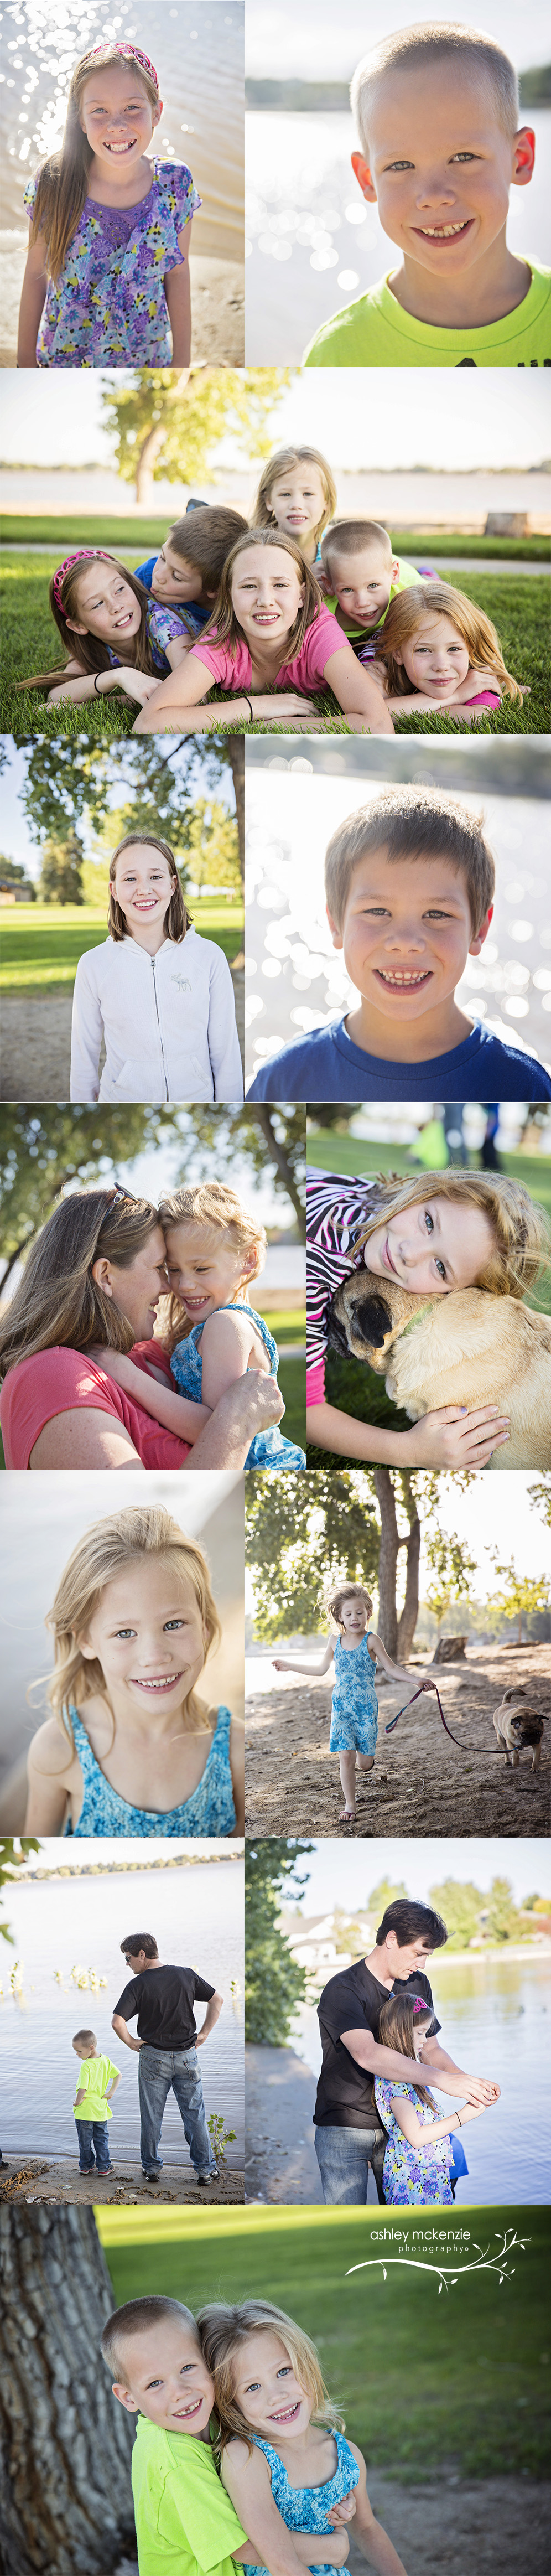 Lifestyle Family Photography by Ashley McKenzie Photography in Loveland, CO